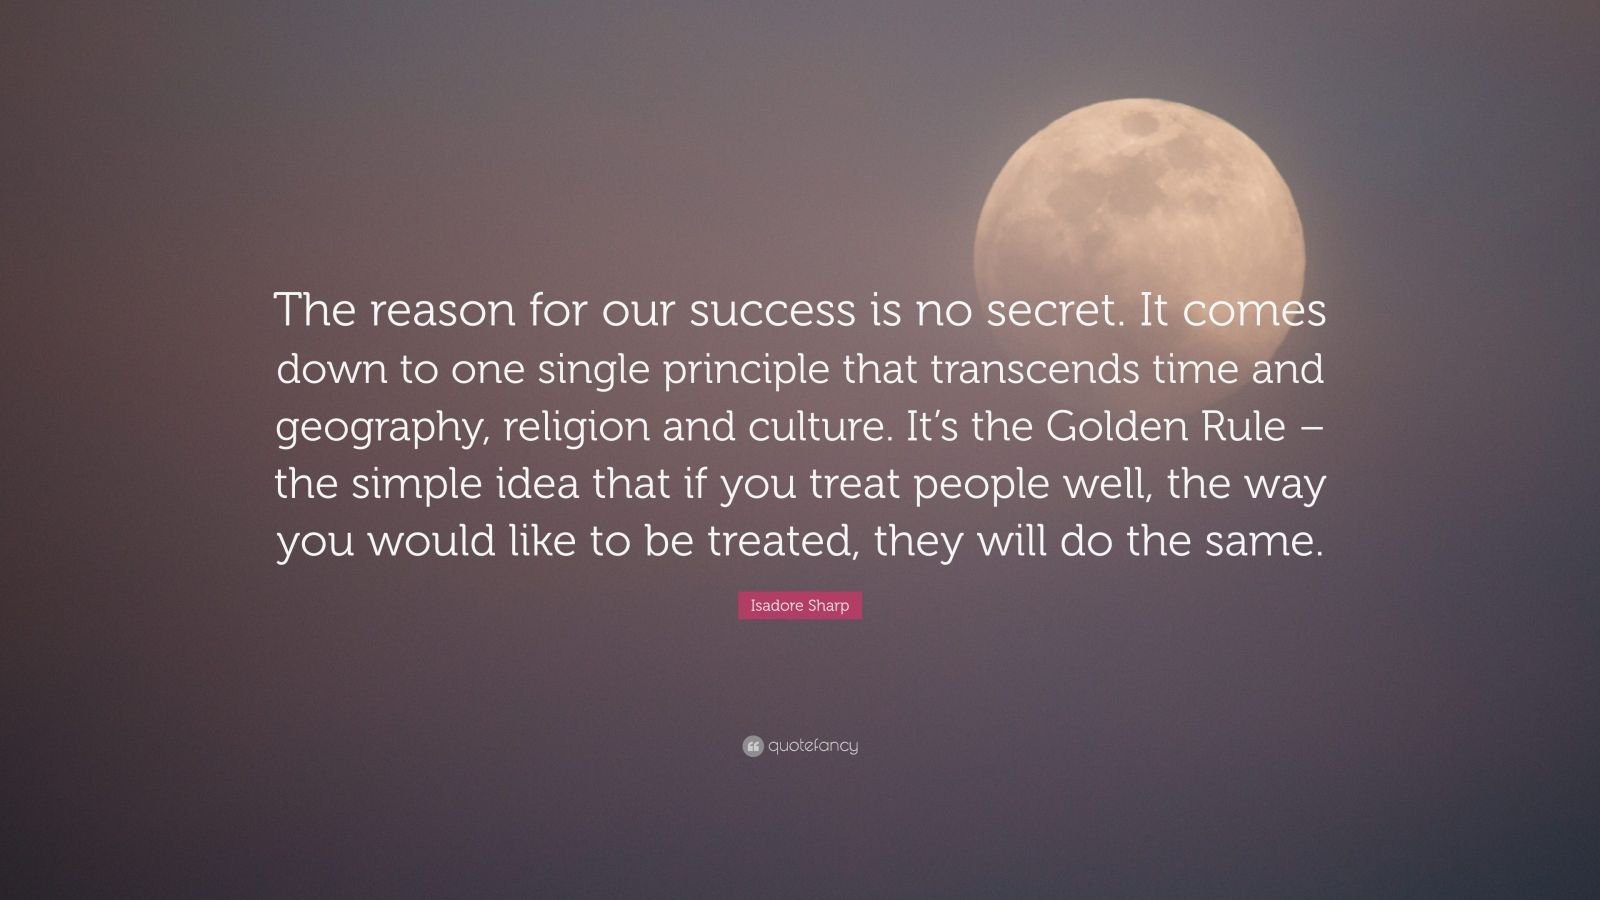 "Isadore Sharp Quote: ""The reason for our success is no secret. It comes down to one single principle that transcends time and geography, religion and culture. It's the Golden Rule – the simple idea that if you treat people well, the way you would like to be treated, they will do the same."""